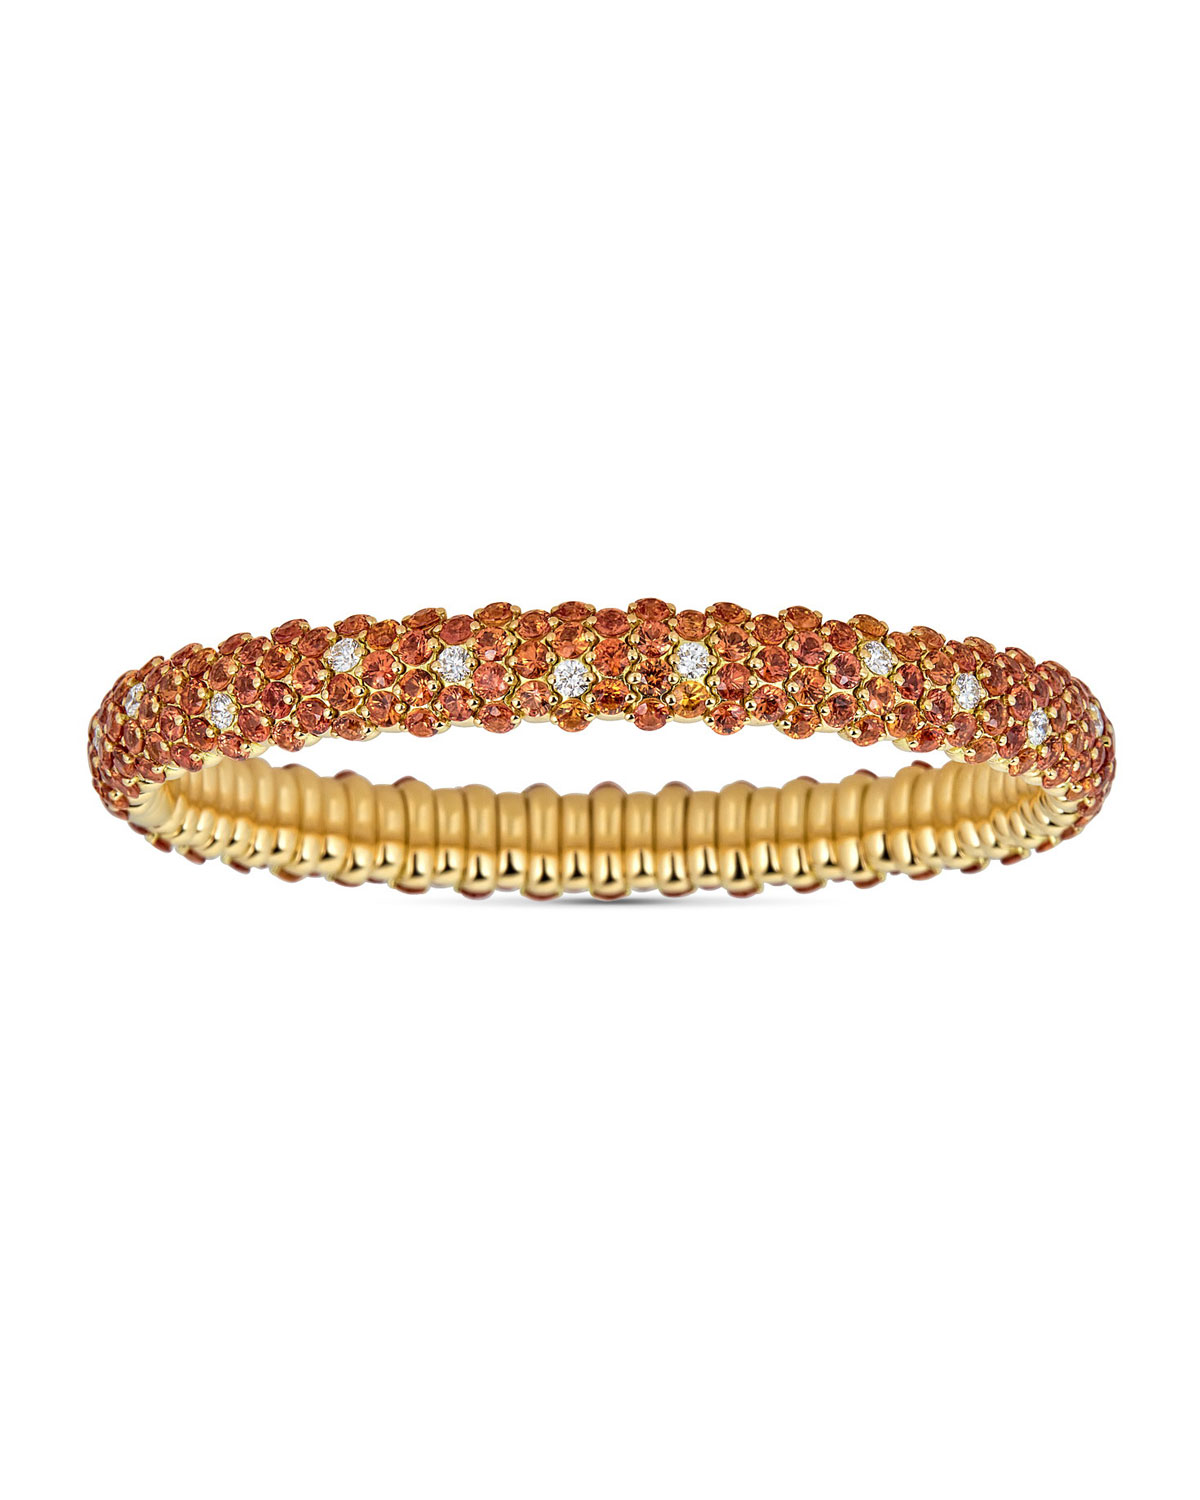 Luminal bracelet from ZYDO. 18-karat yellow gold frame. Round-cut white diamonds. 0.79 total carat weight. Slip-on style. Made in Italy.